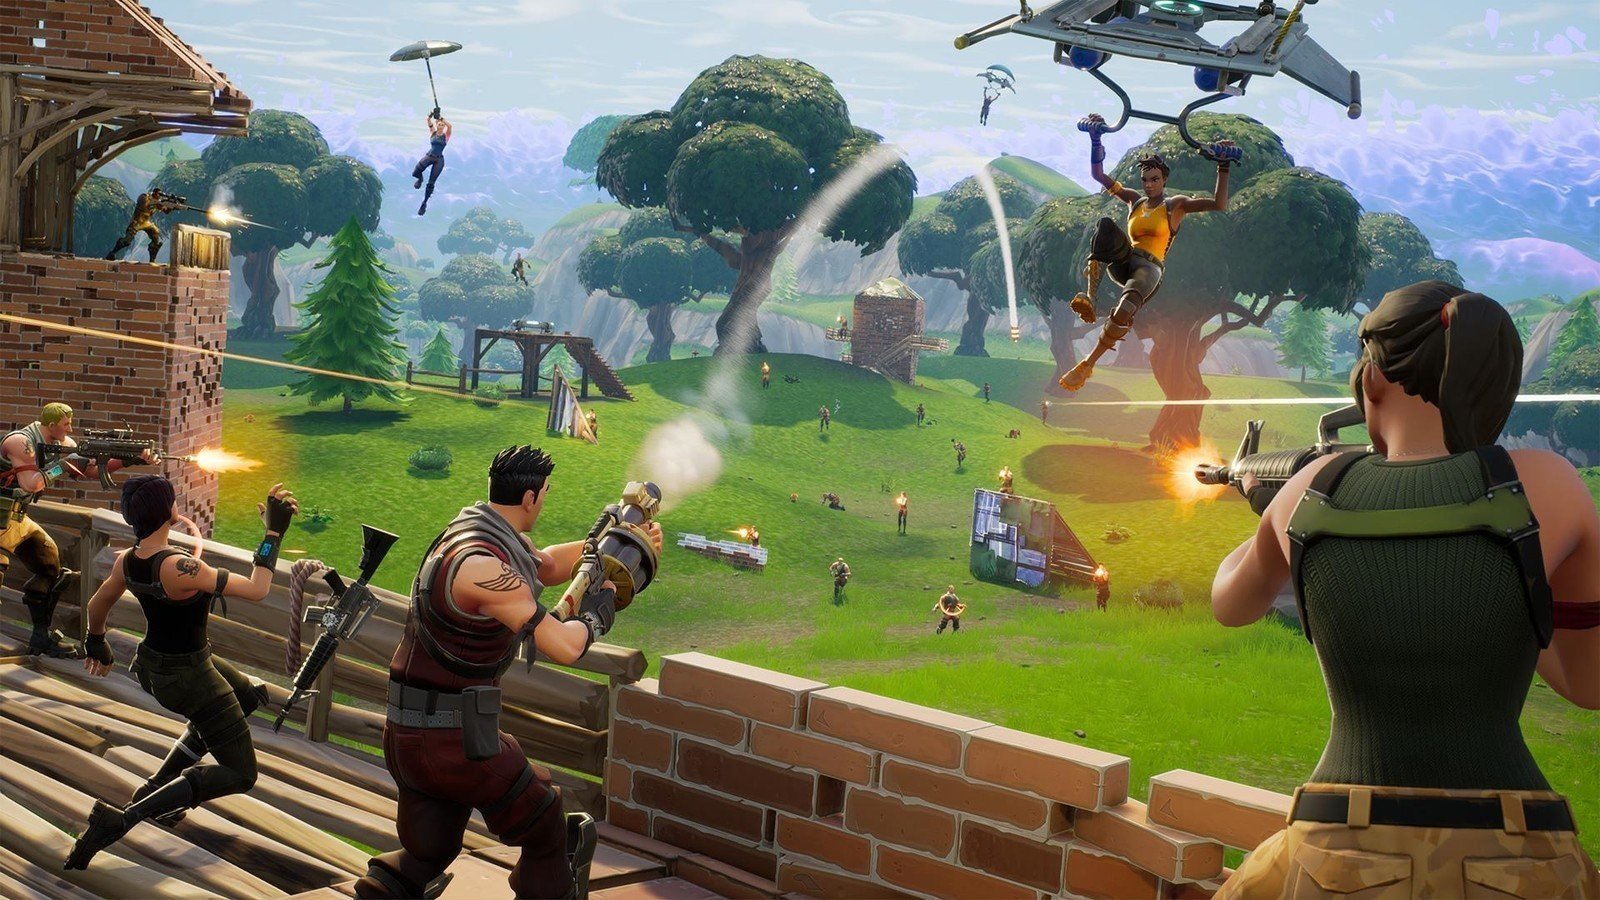 Fortnite Switch players won't have to deal with Nintendo's convoluted app to chat screenshot